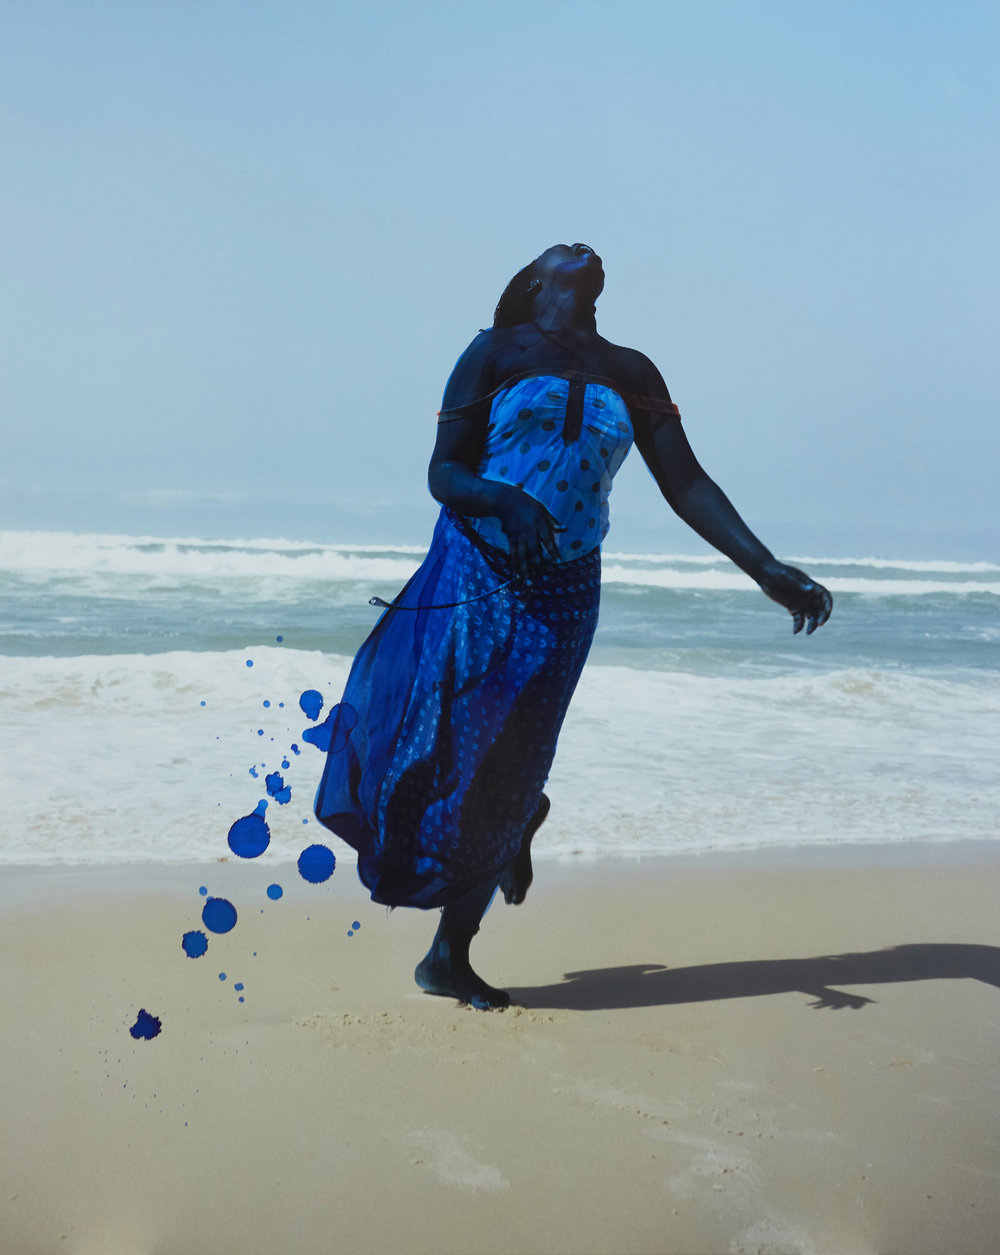 Viviane Sassen, Blue Dolphin, 2017 © Viviane Sassen, Courtesy of Stevenson, Cape Town and Johannesburg